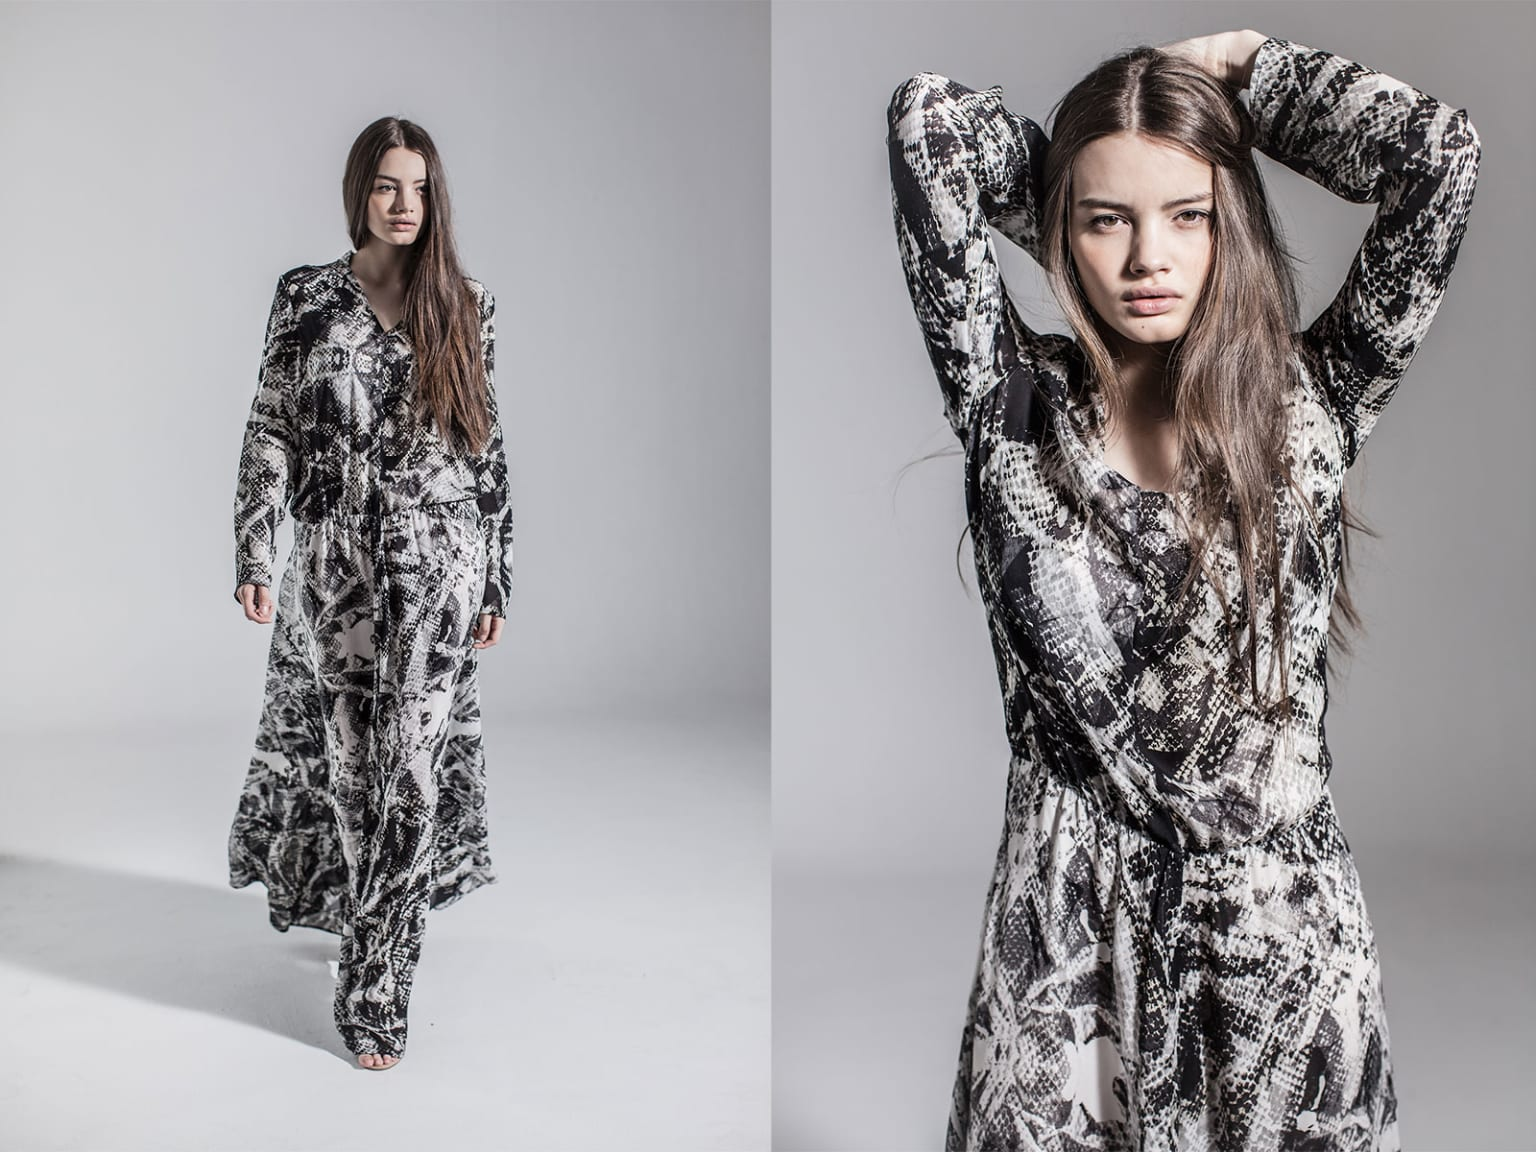 Stylein All-over-print for Fall 2013 collection